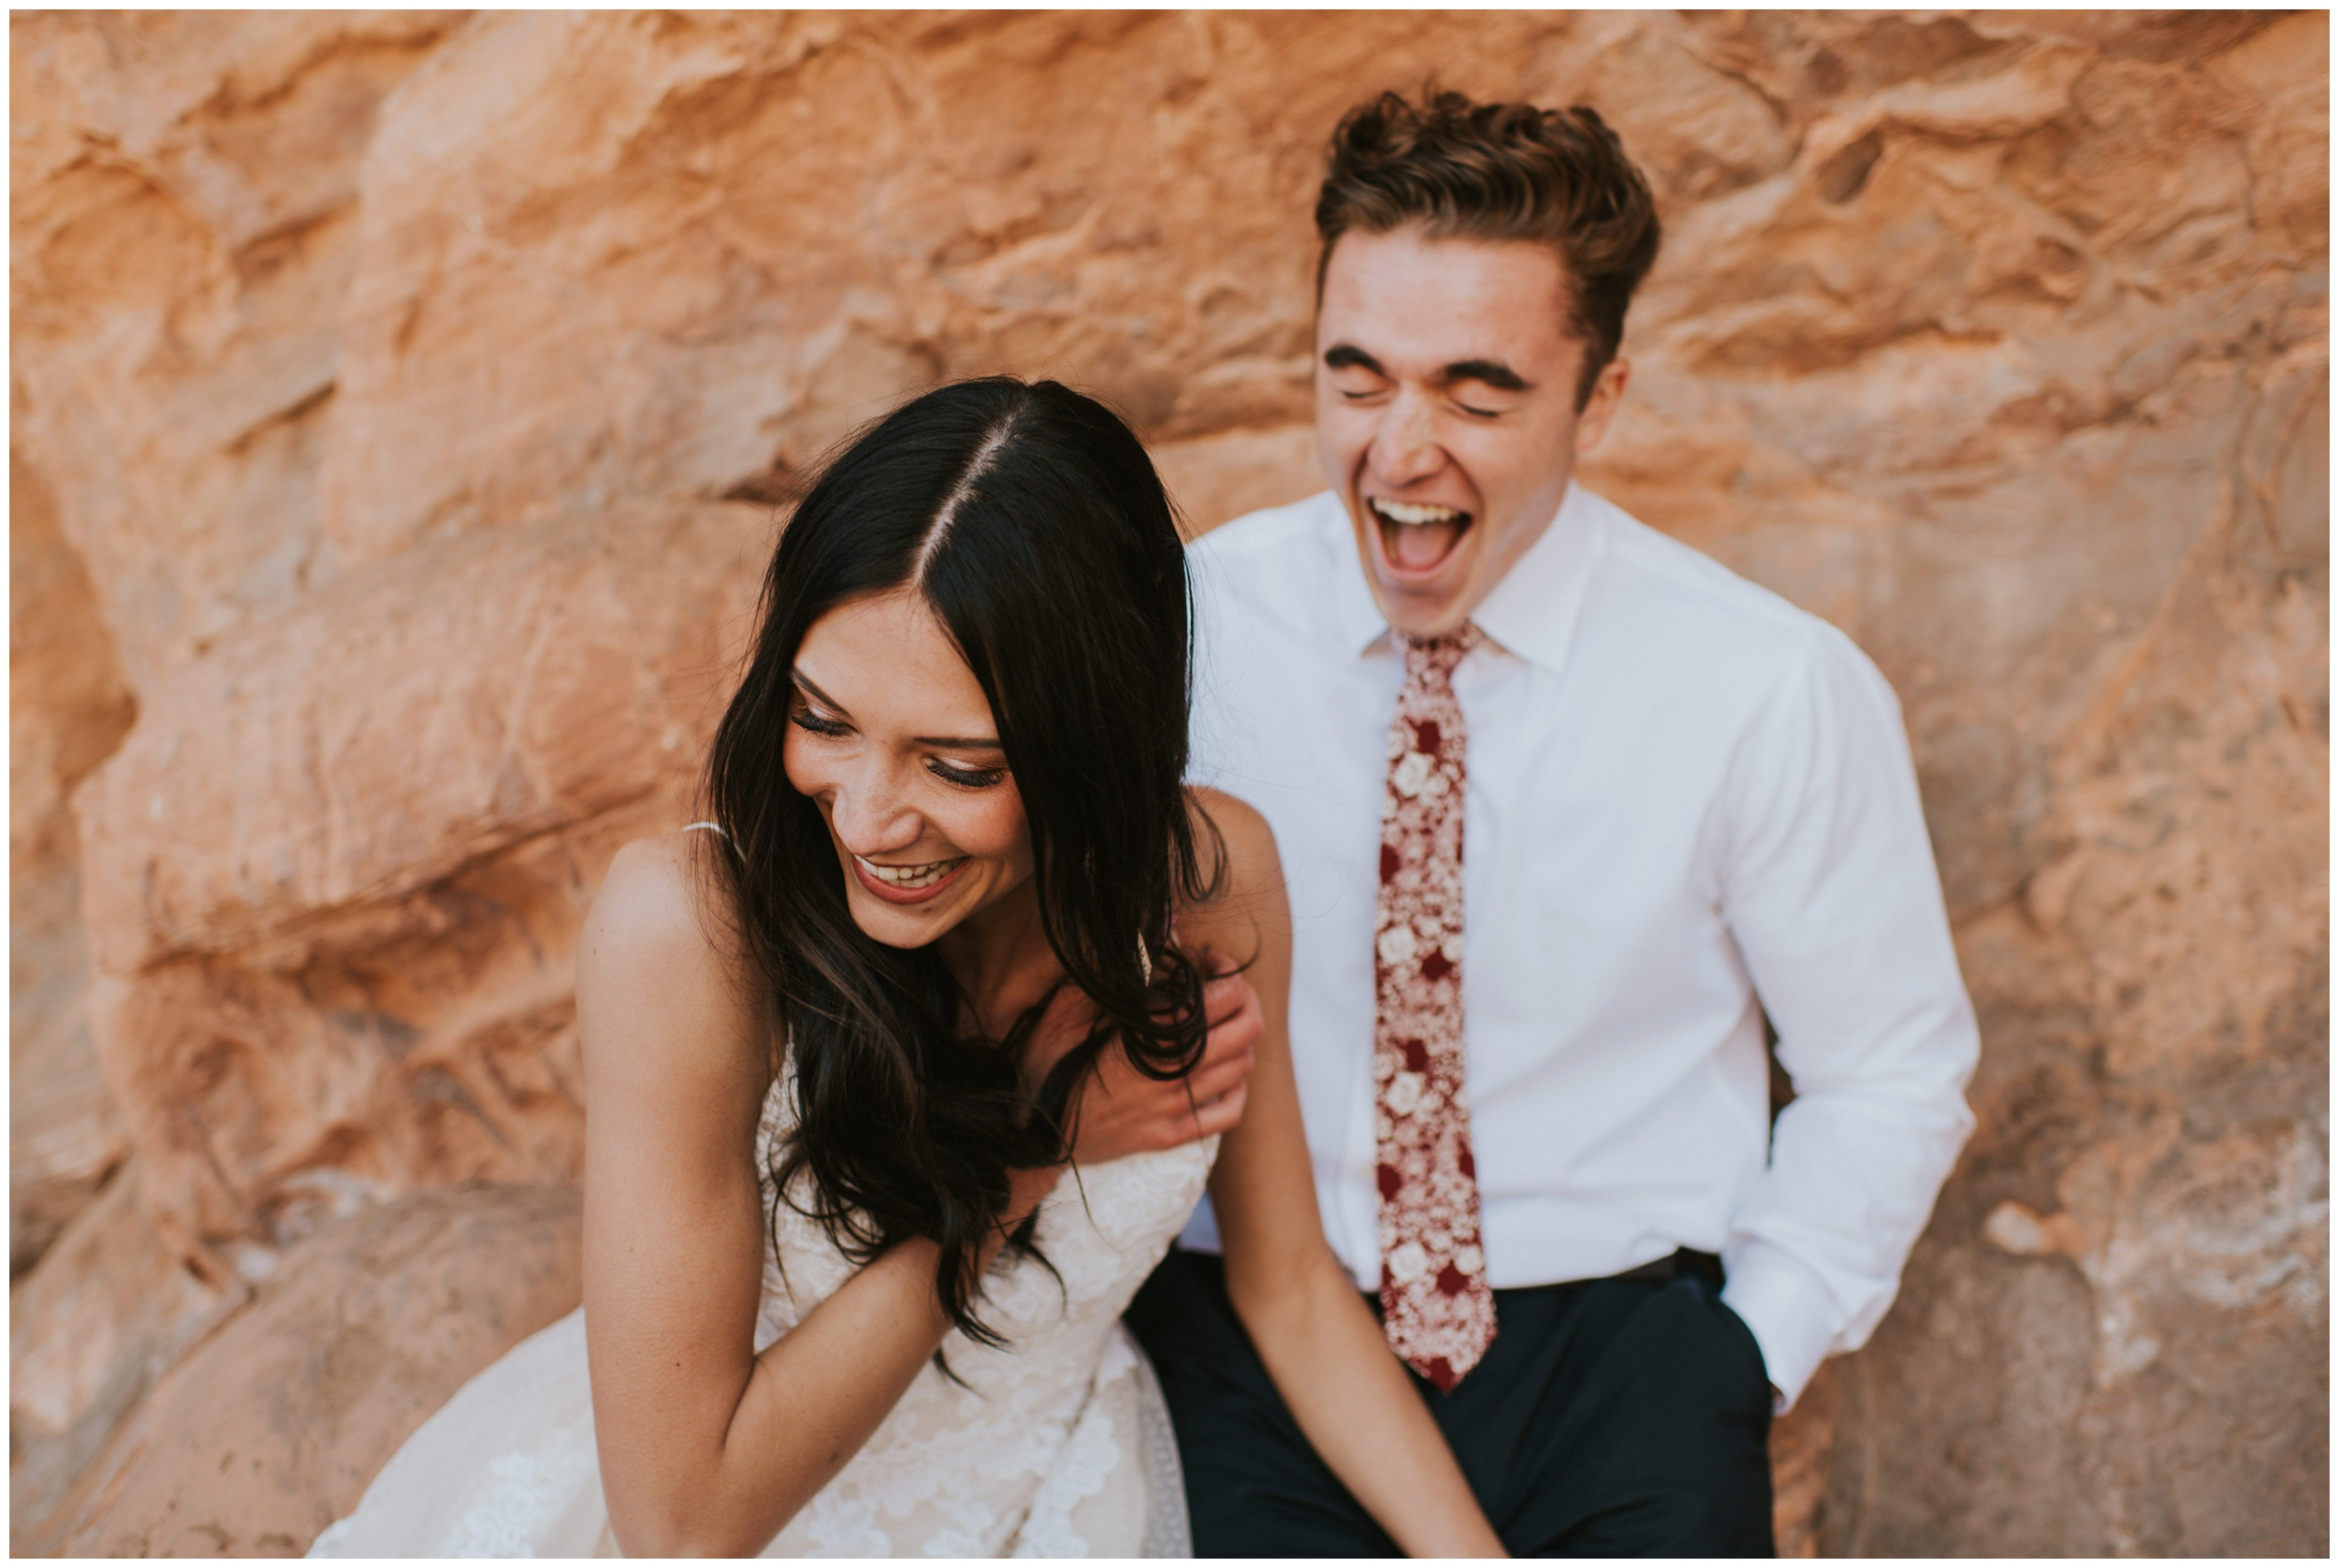 redrockutah-idahophotographer-utahphotographer-wedding-63.jpg